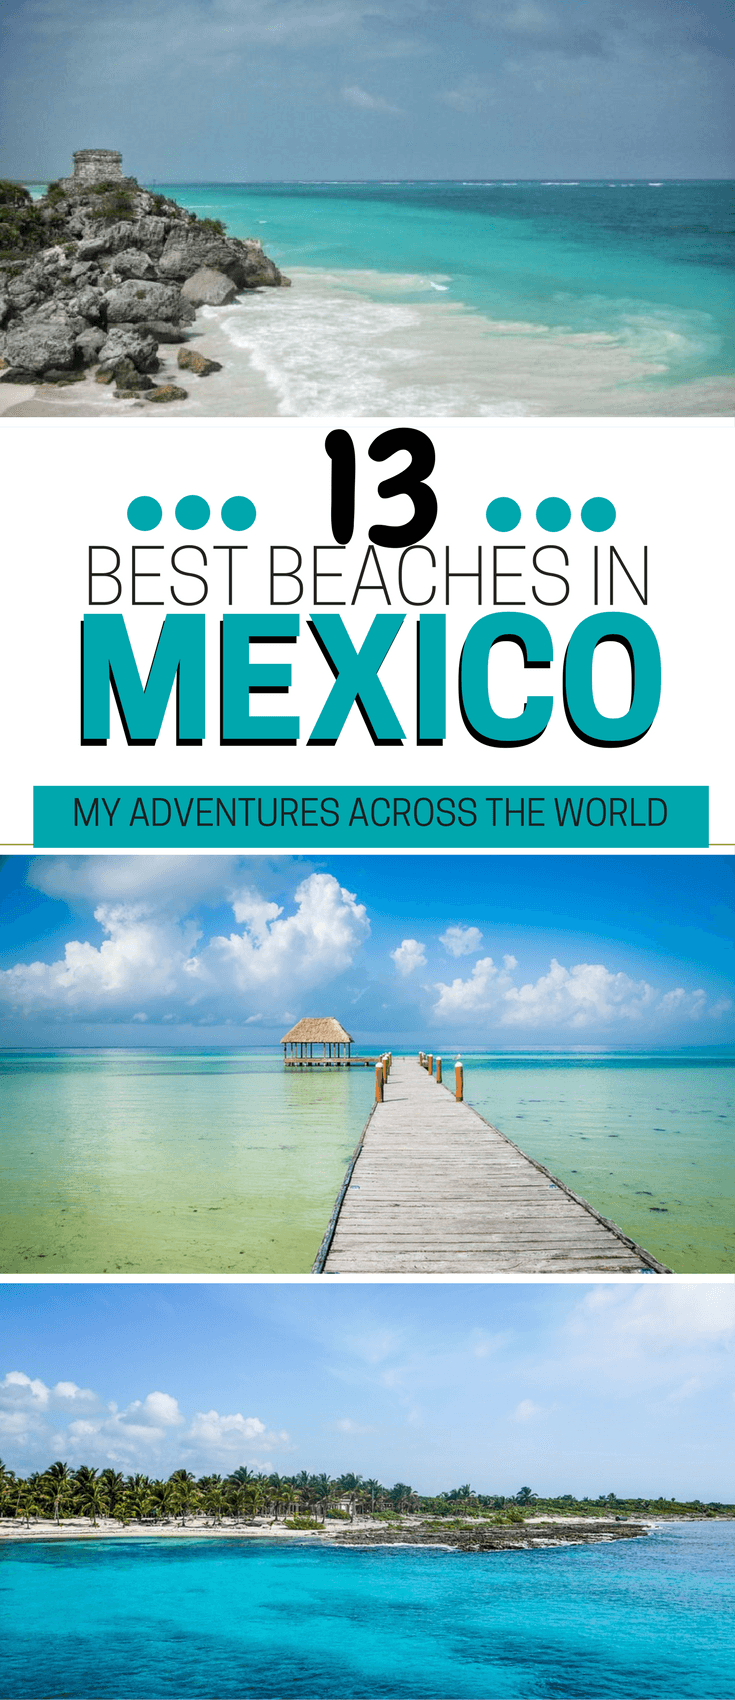 The 13 Best Beaches In Mexico